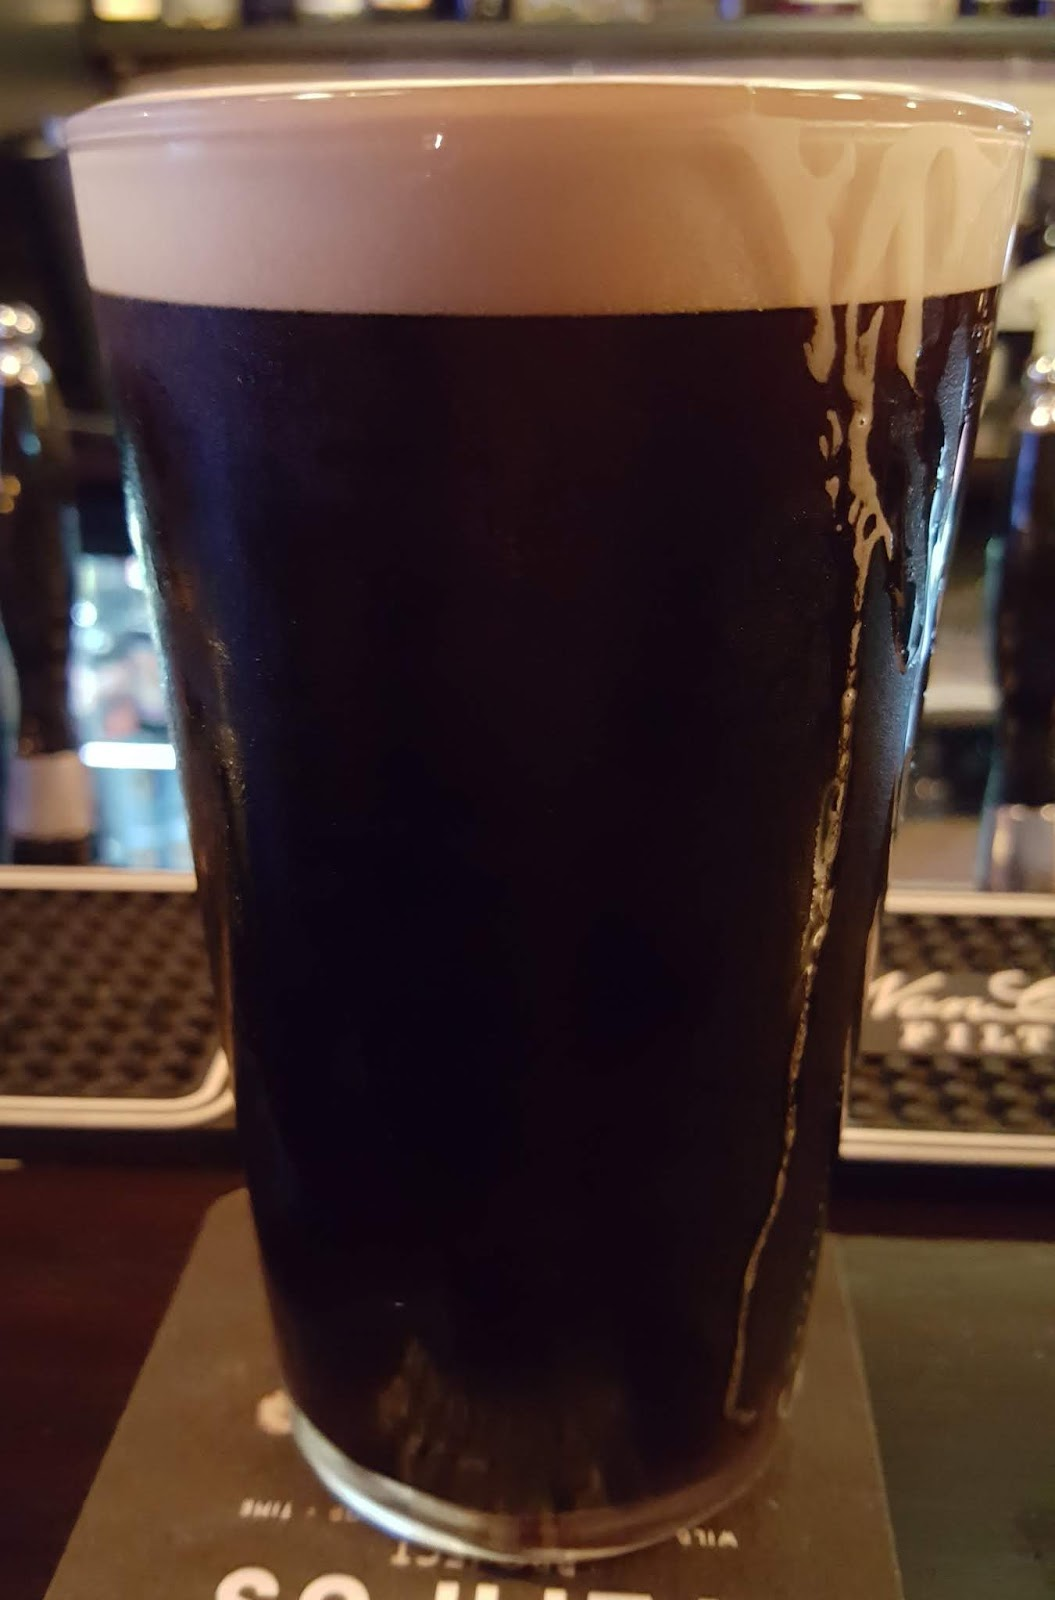 And A Final Addition To The Round Up Comes In The Form Of Dark Side A New Nitro Stout From Larkins Im Guessing This Is Intended As A Core Beer